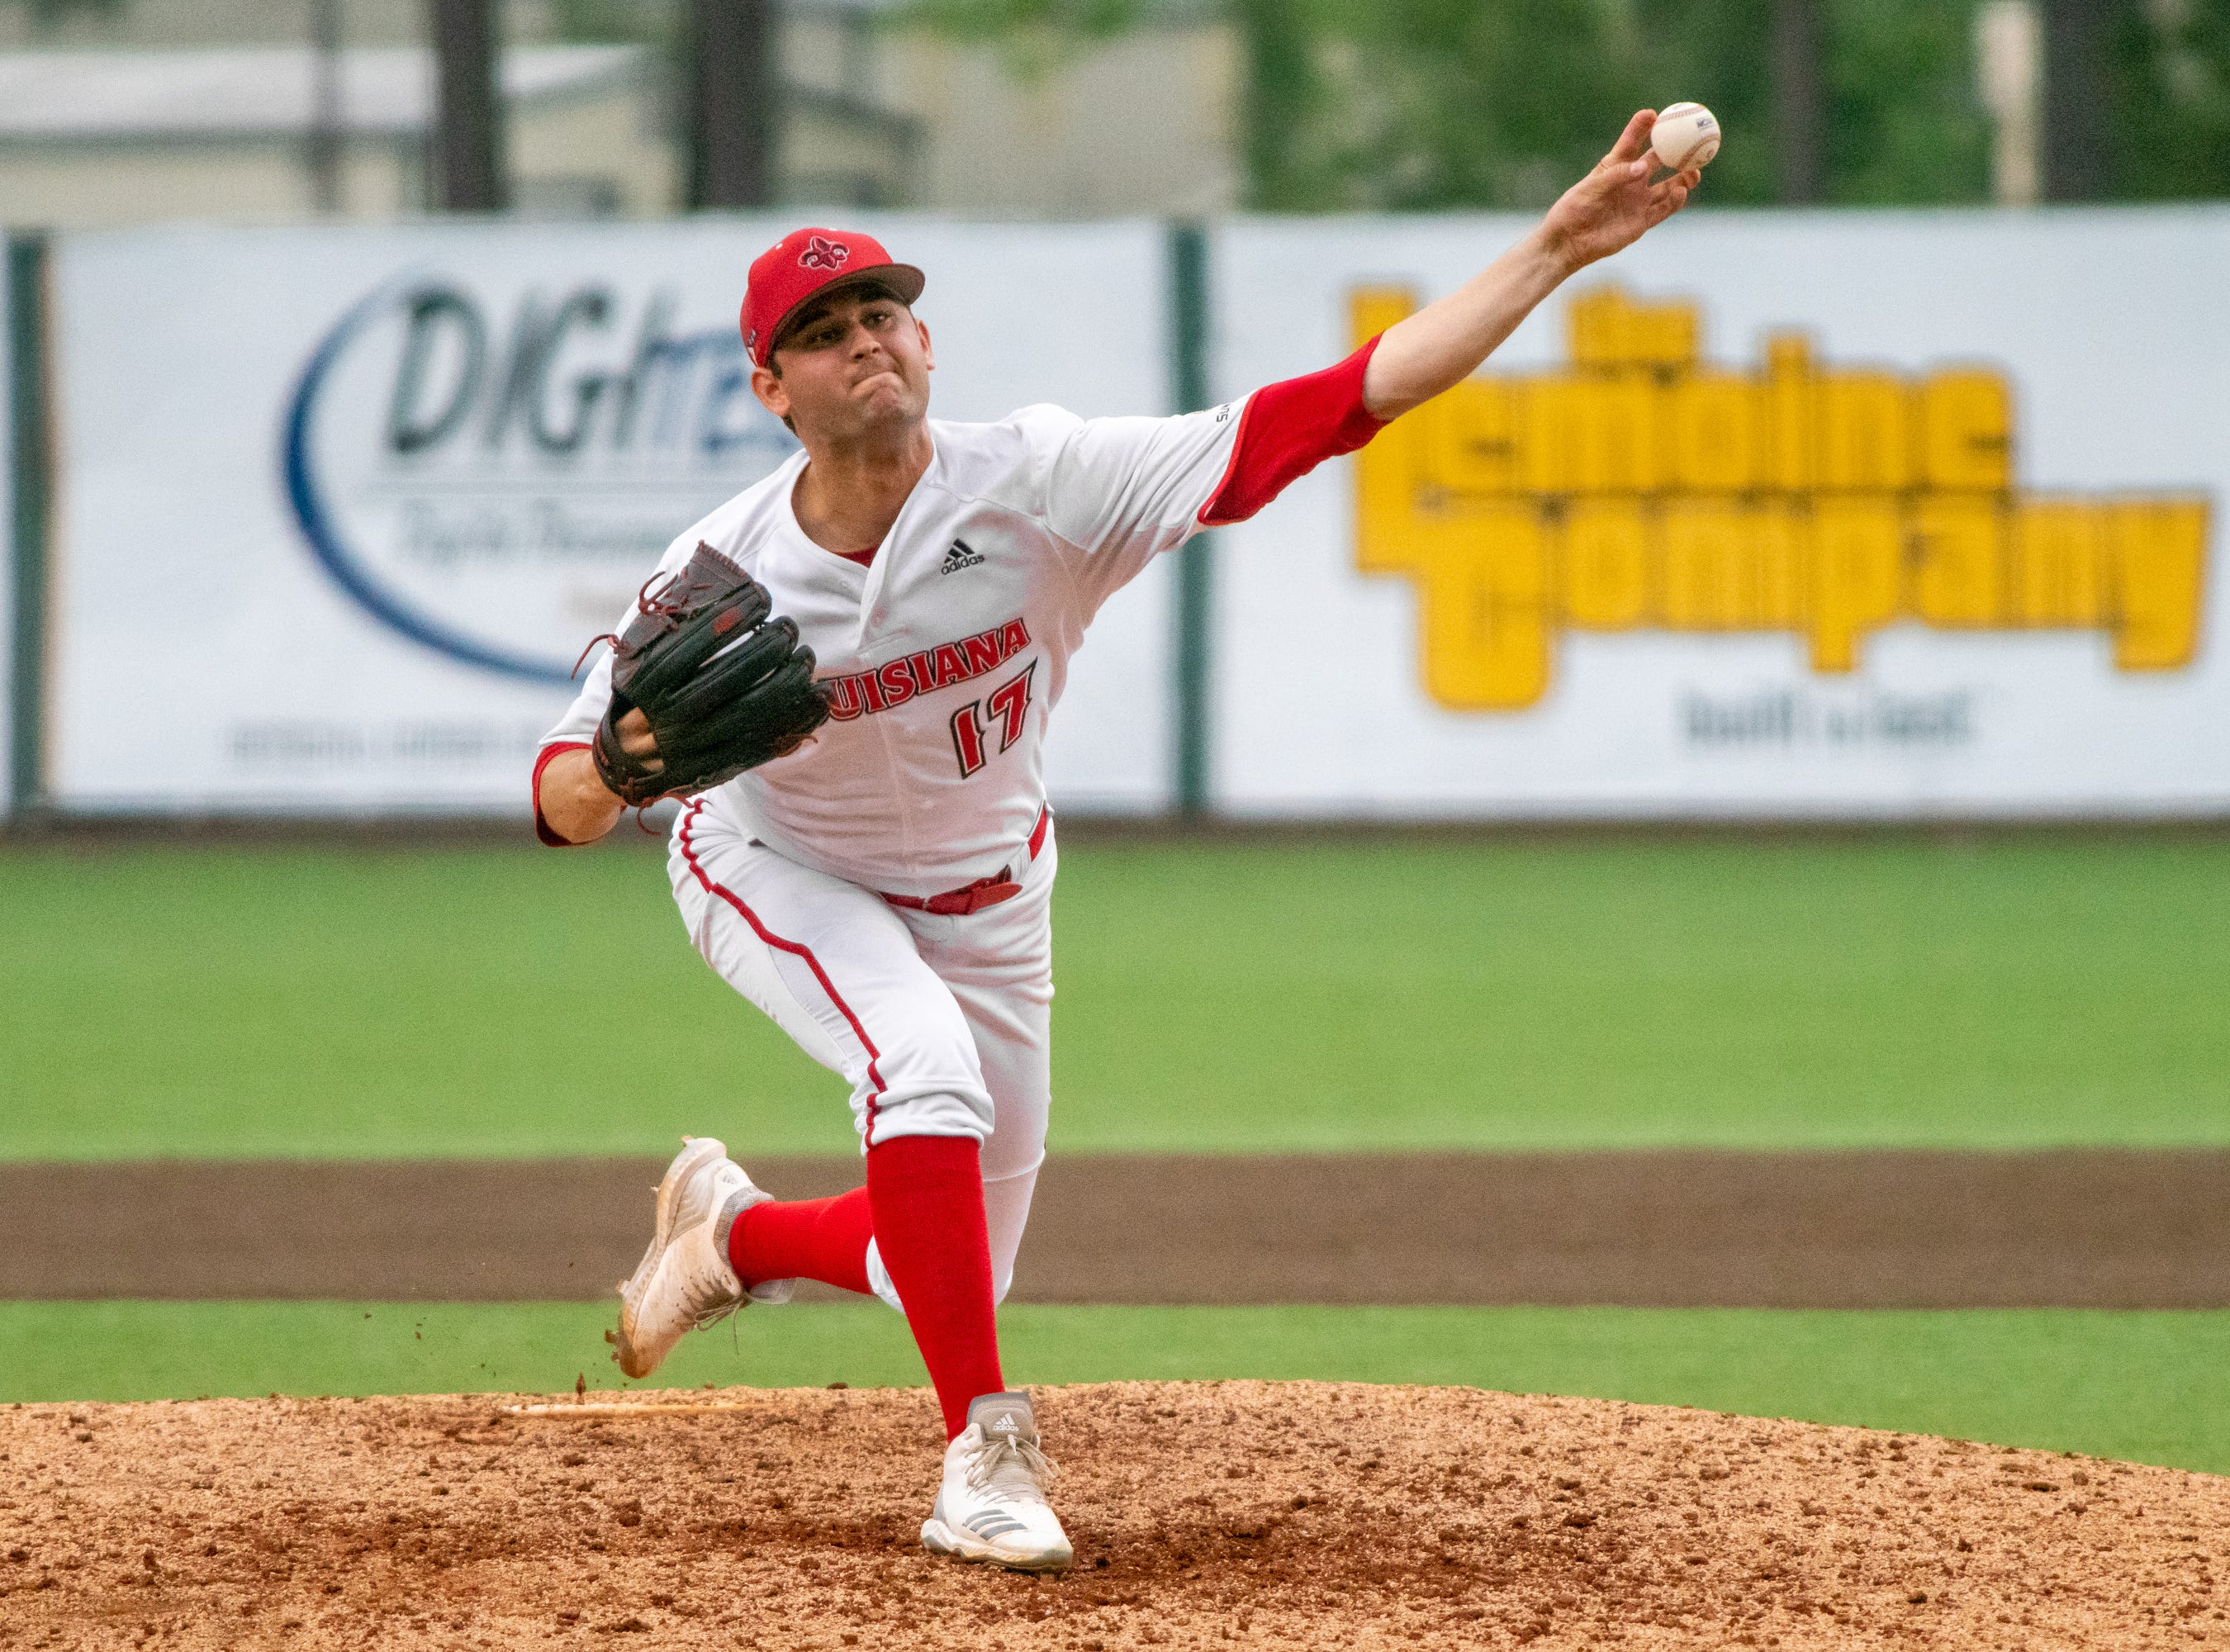 """UL's pitcher Gunner Leger throws the ball to the batter as the Ragin' Cajuns take on the South Alabama Jaguars at M.L. """"Tigue"""" Moore Field on Saturday, April 13, 2019."""